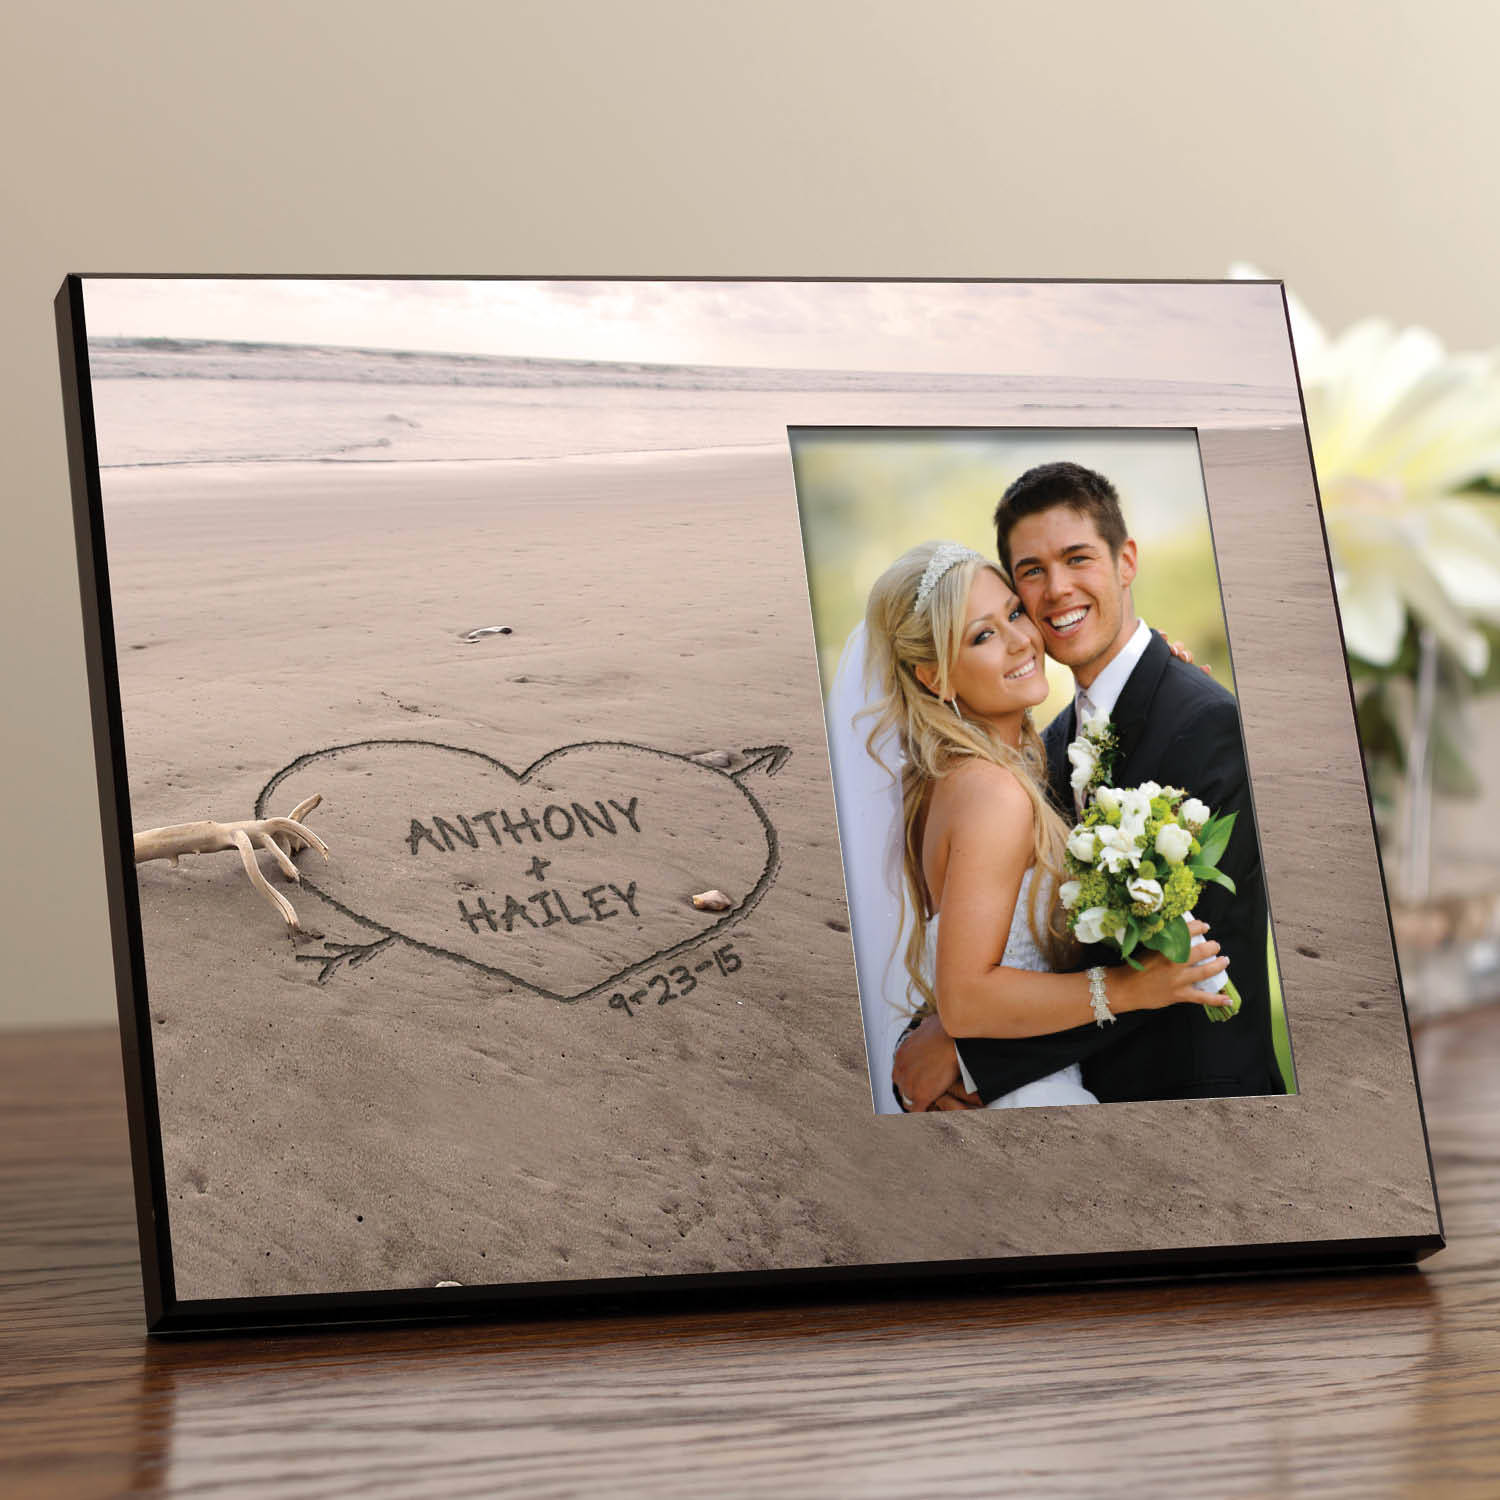 Personalized Names In The Sand Frame